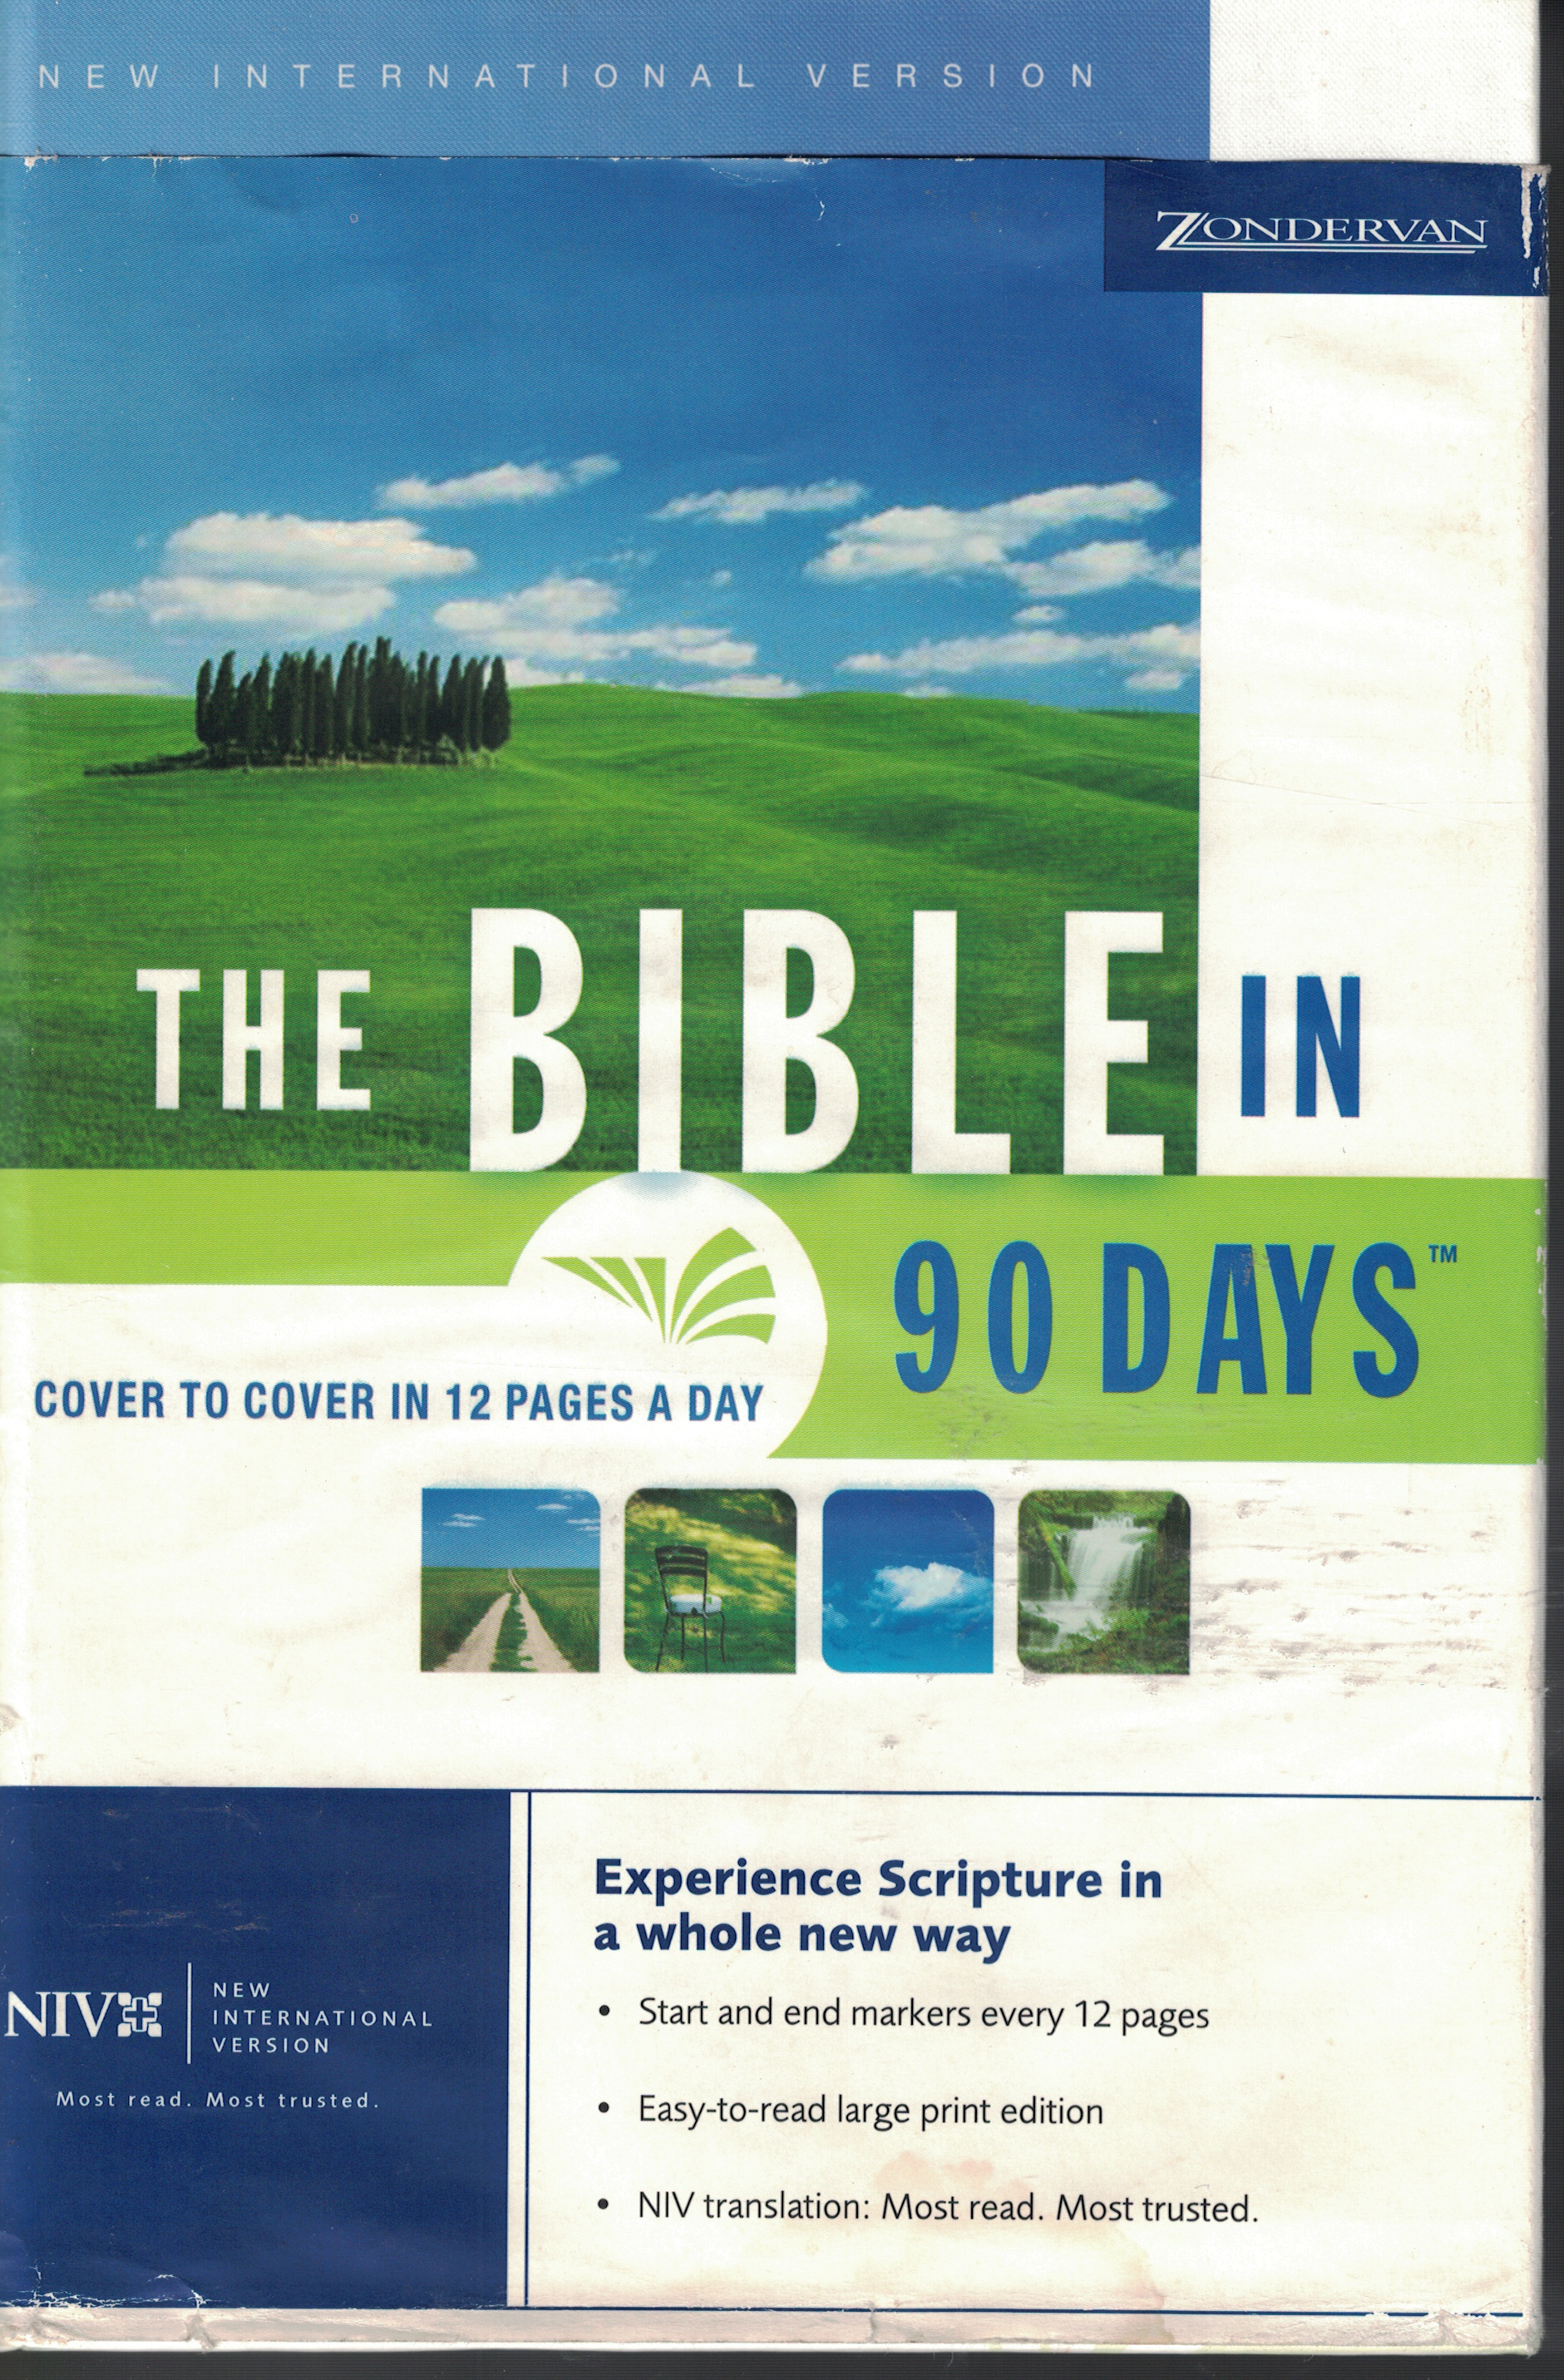 Image for Bible In 90 Days - New International Version Cover to Cover in 12 Pages a Day